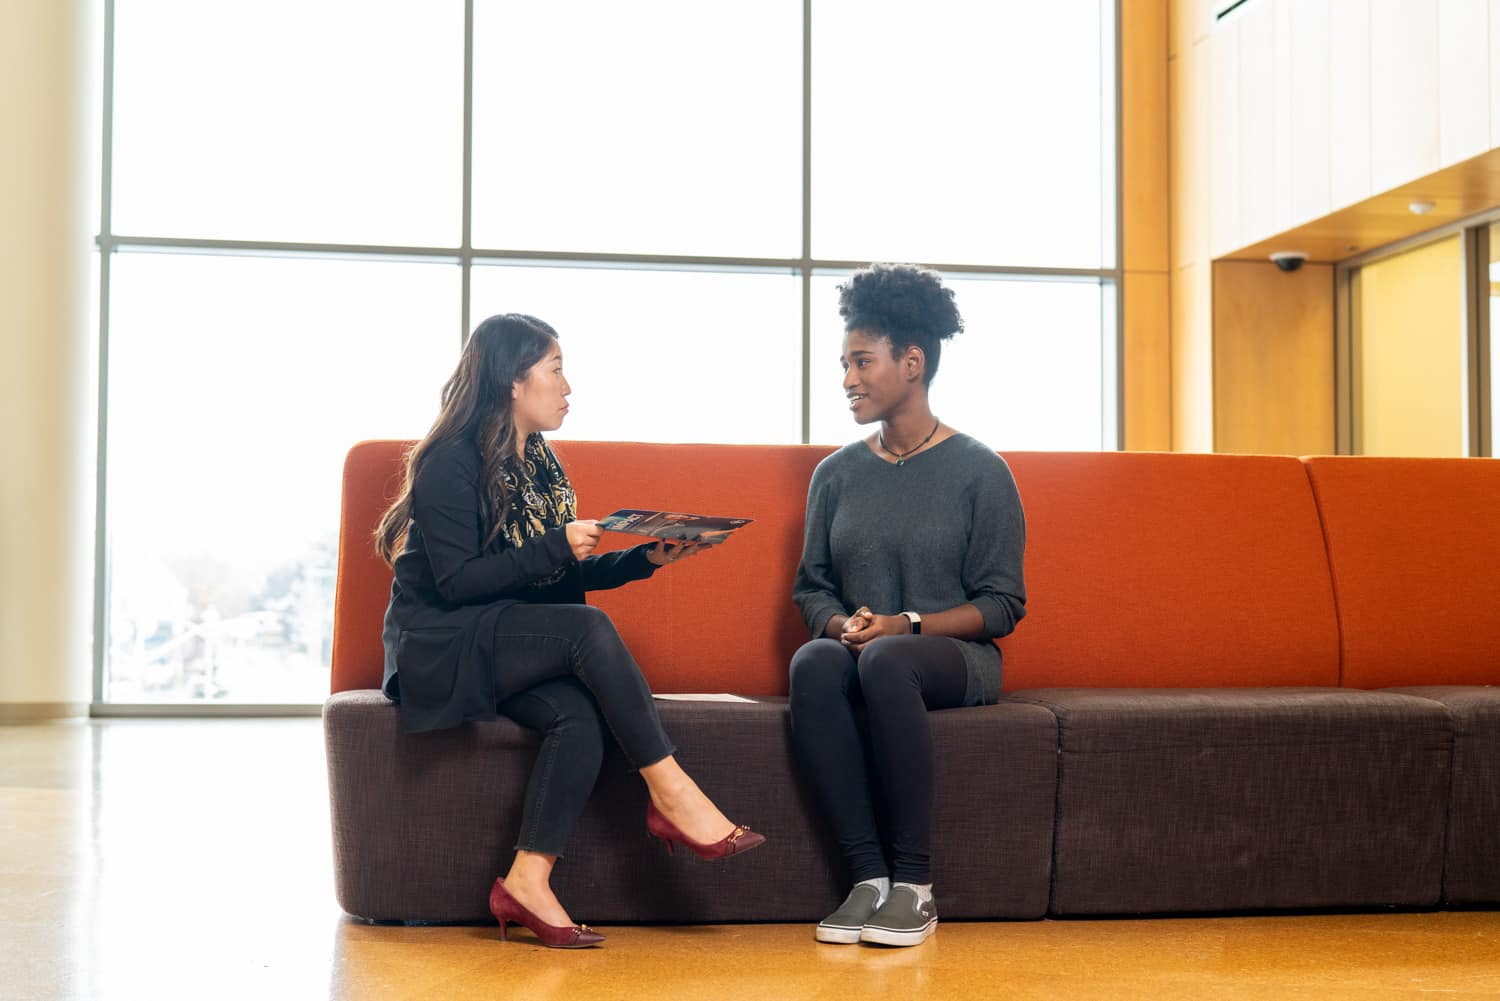 student and advisor discussing paperwork on couch